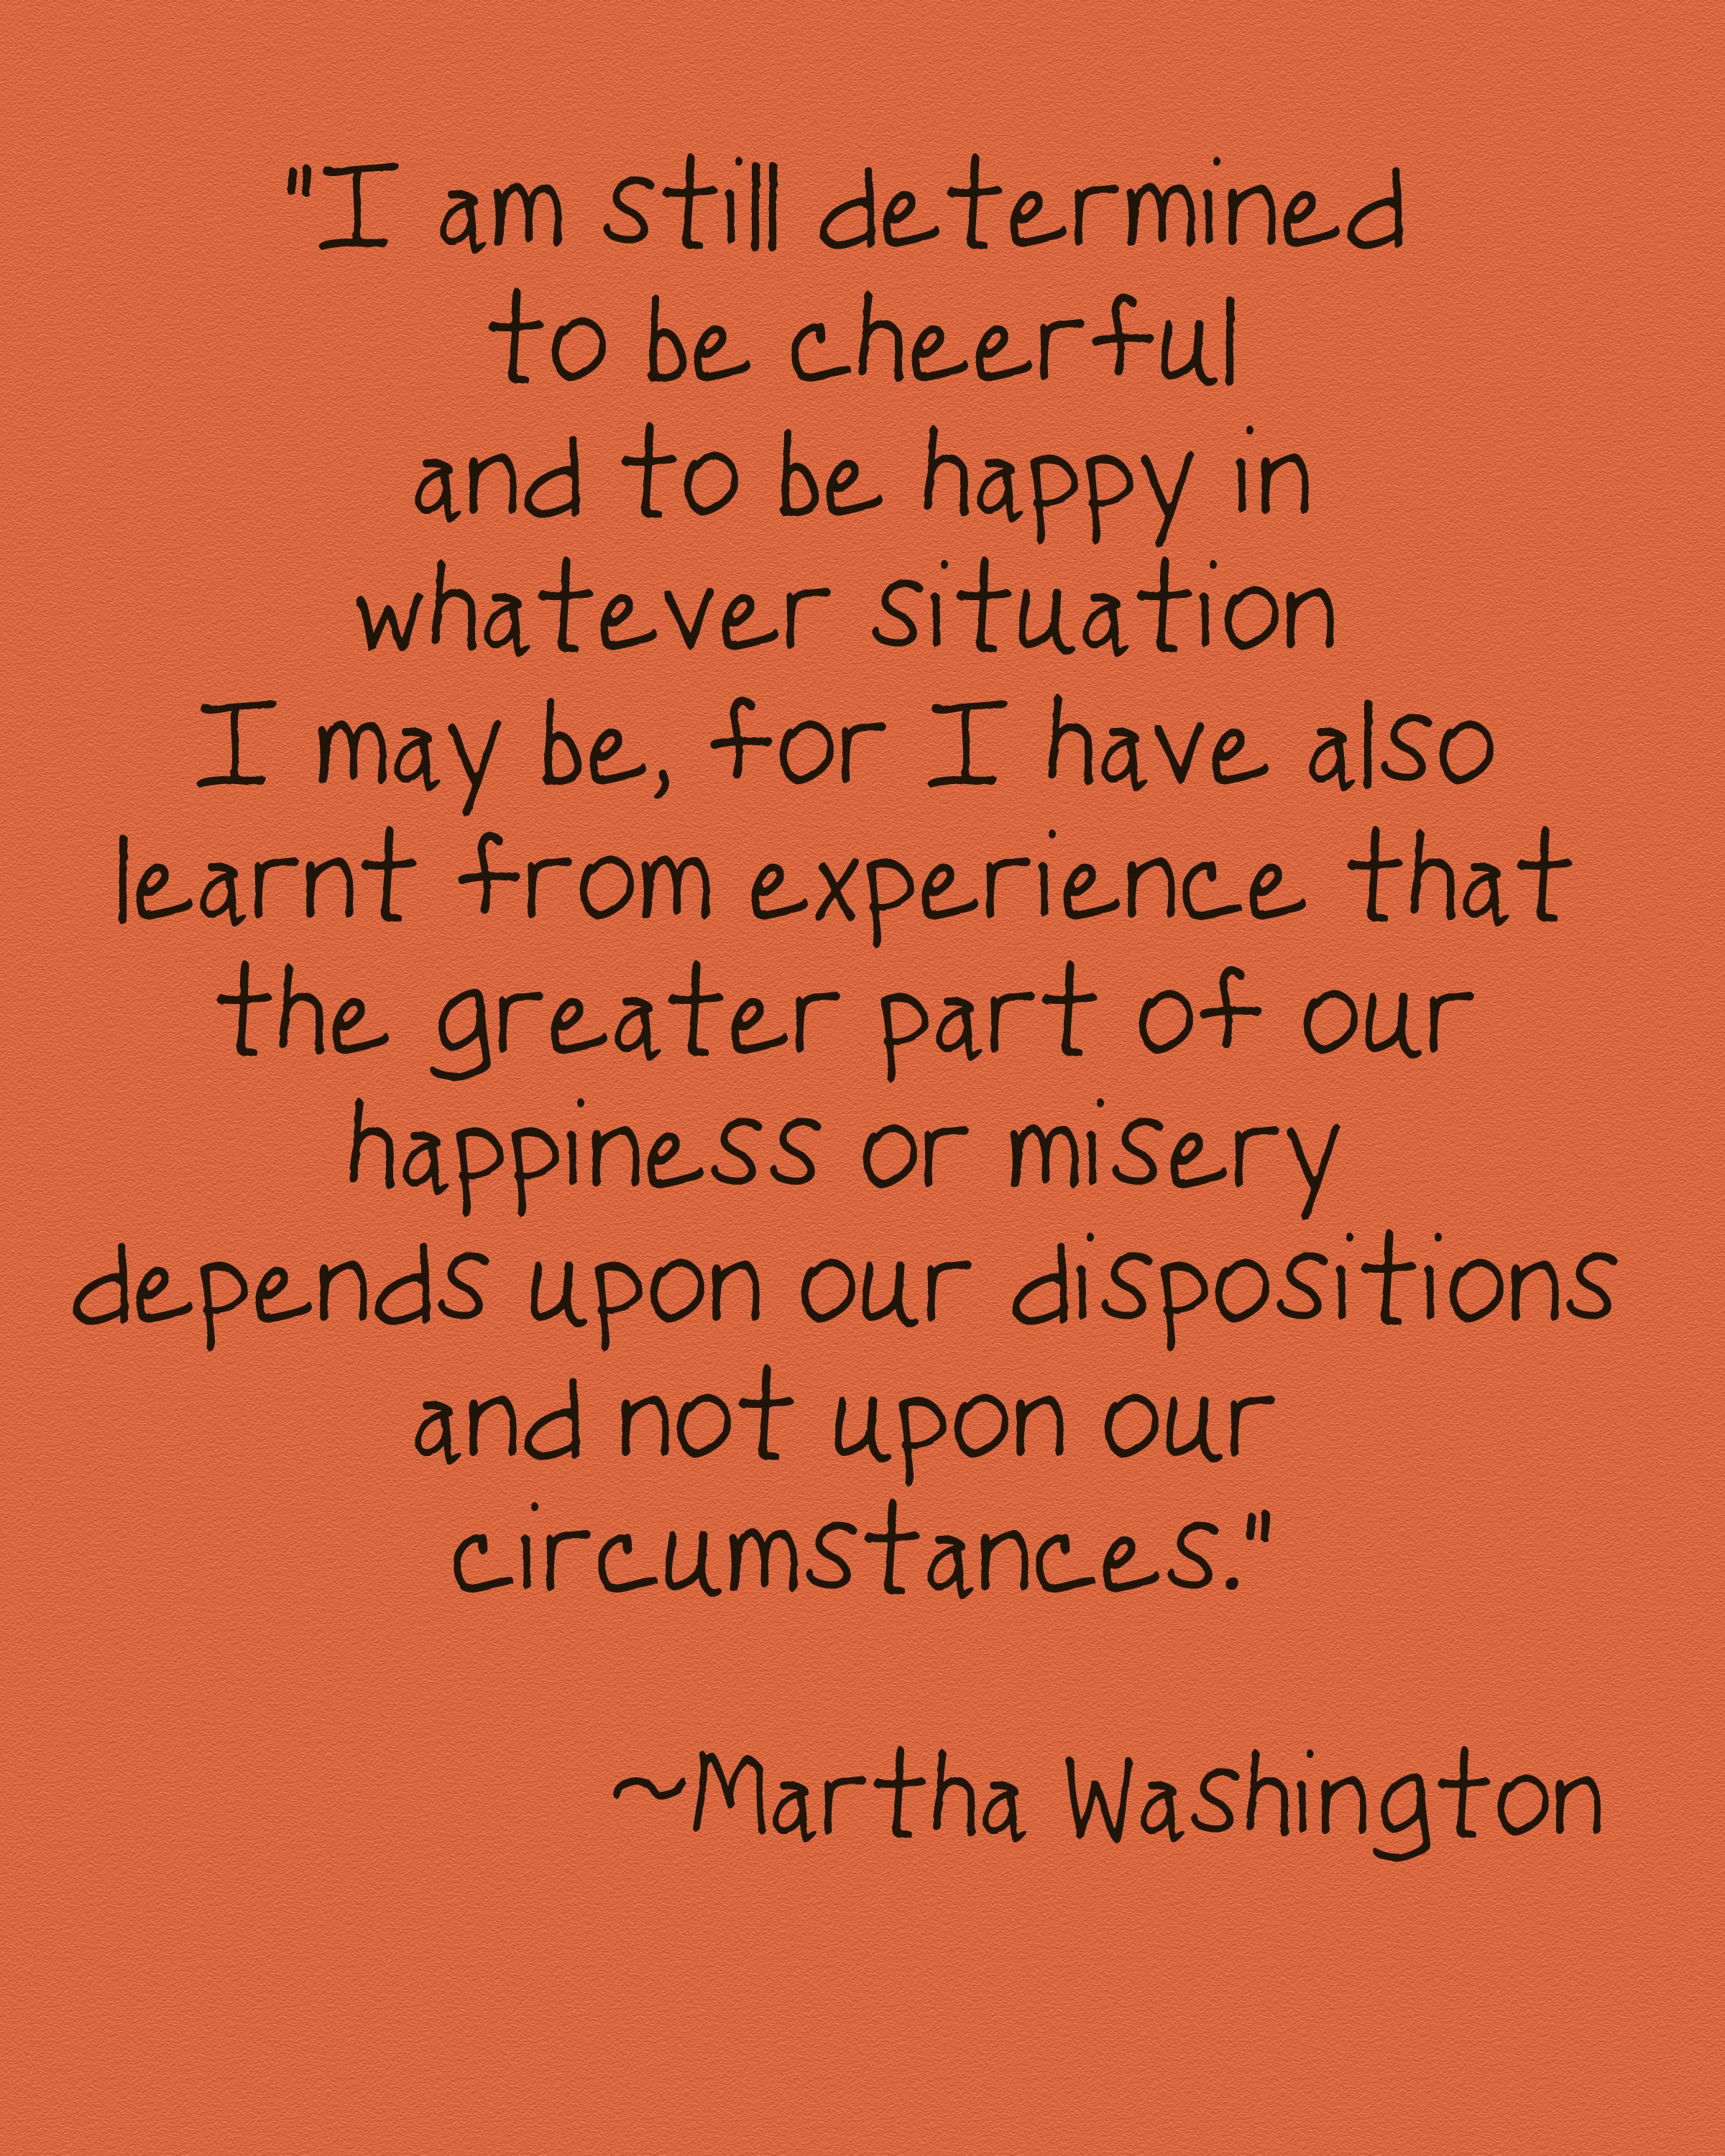 Martha Washington.